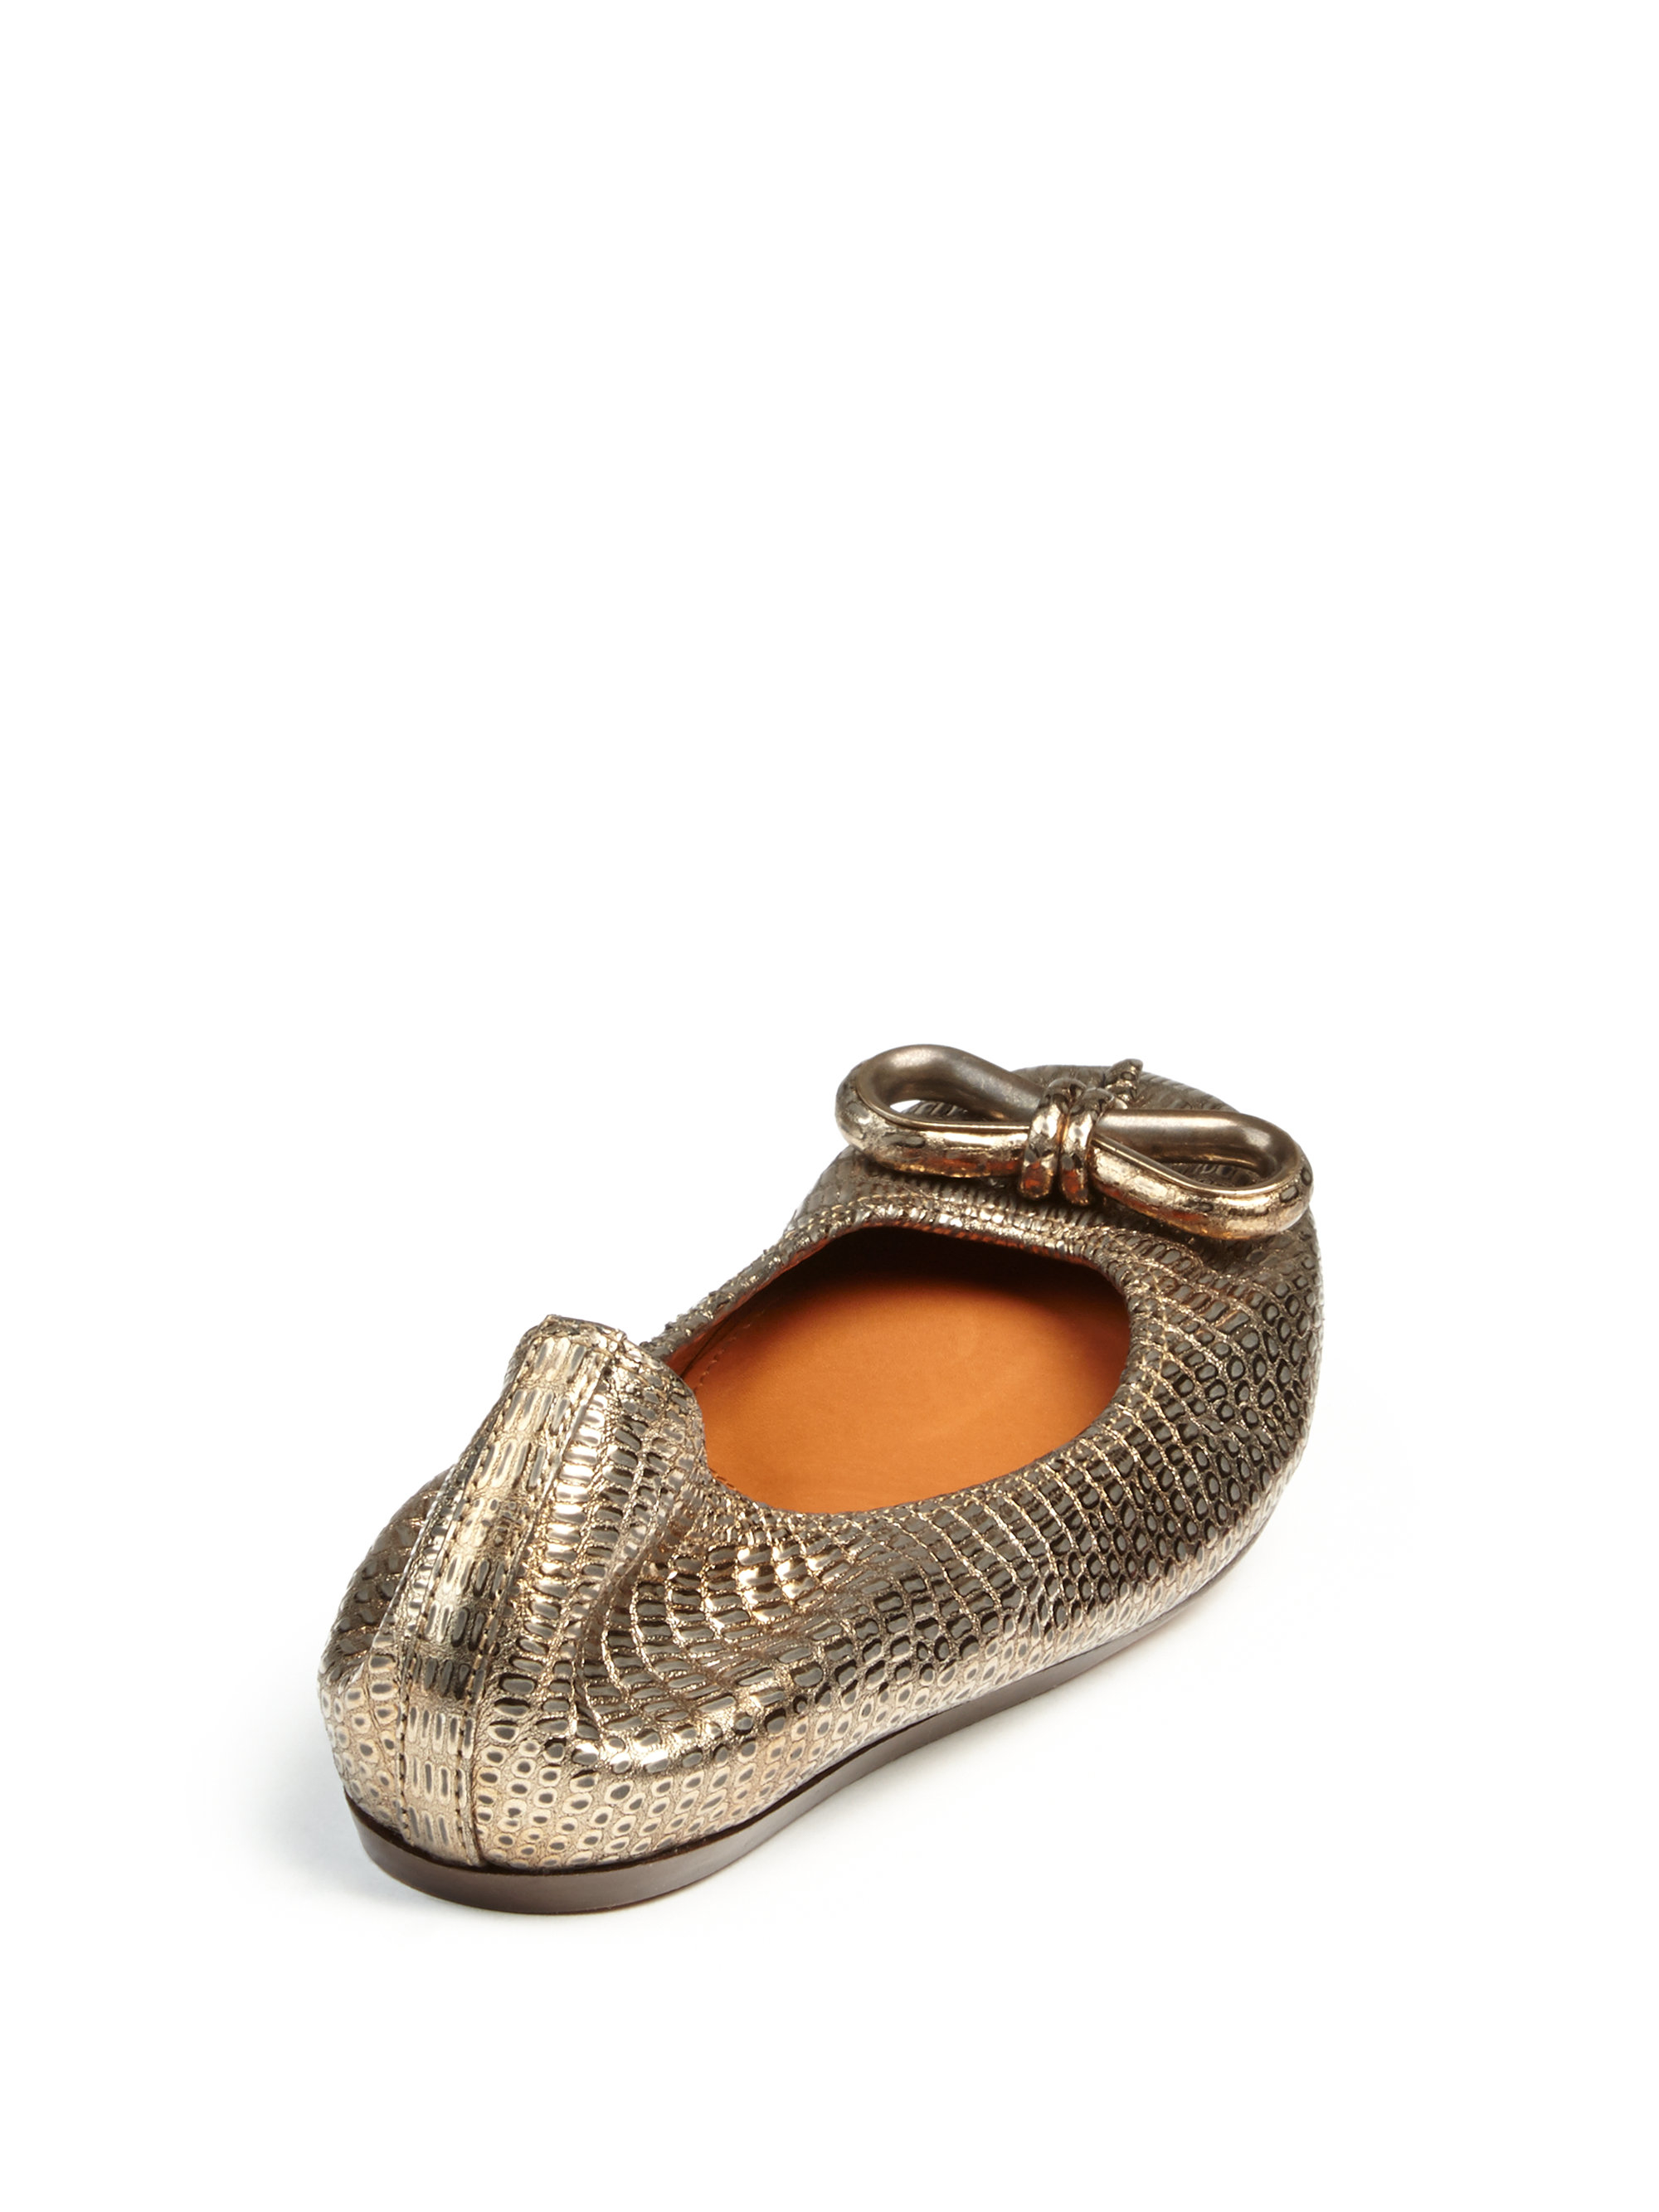 Lanvin Metallic-Embossed Leather Flats sale cheap prices discount cheap price cheap looking for authentic cheap price z82IpWn36